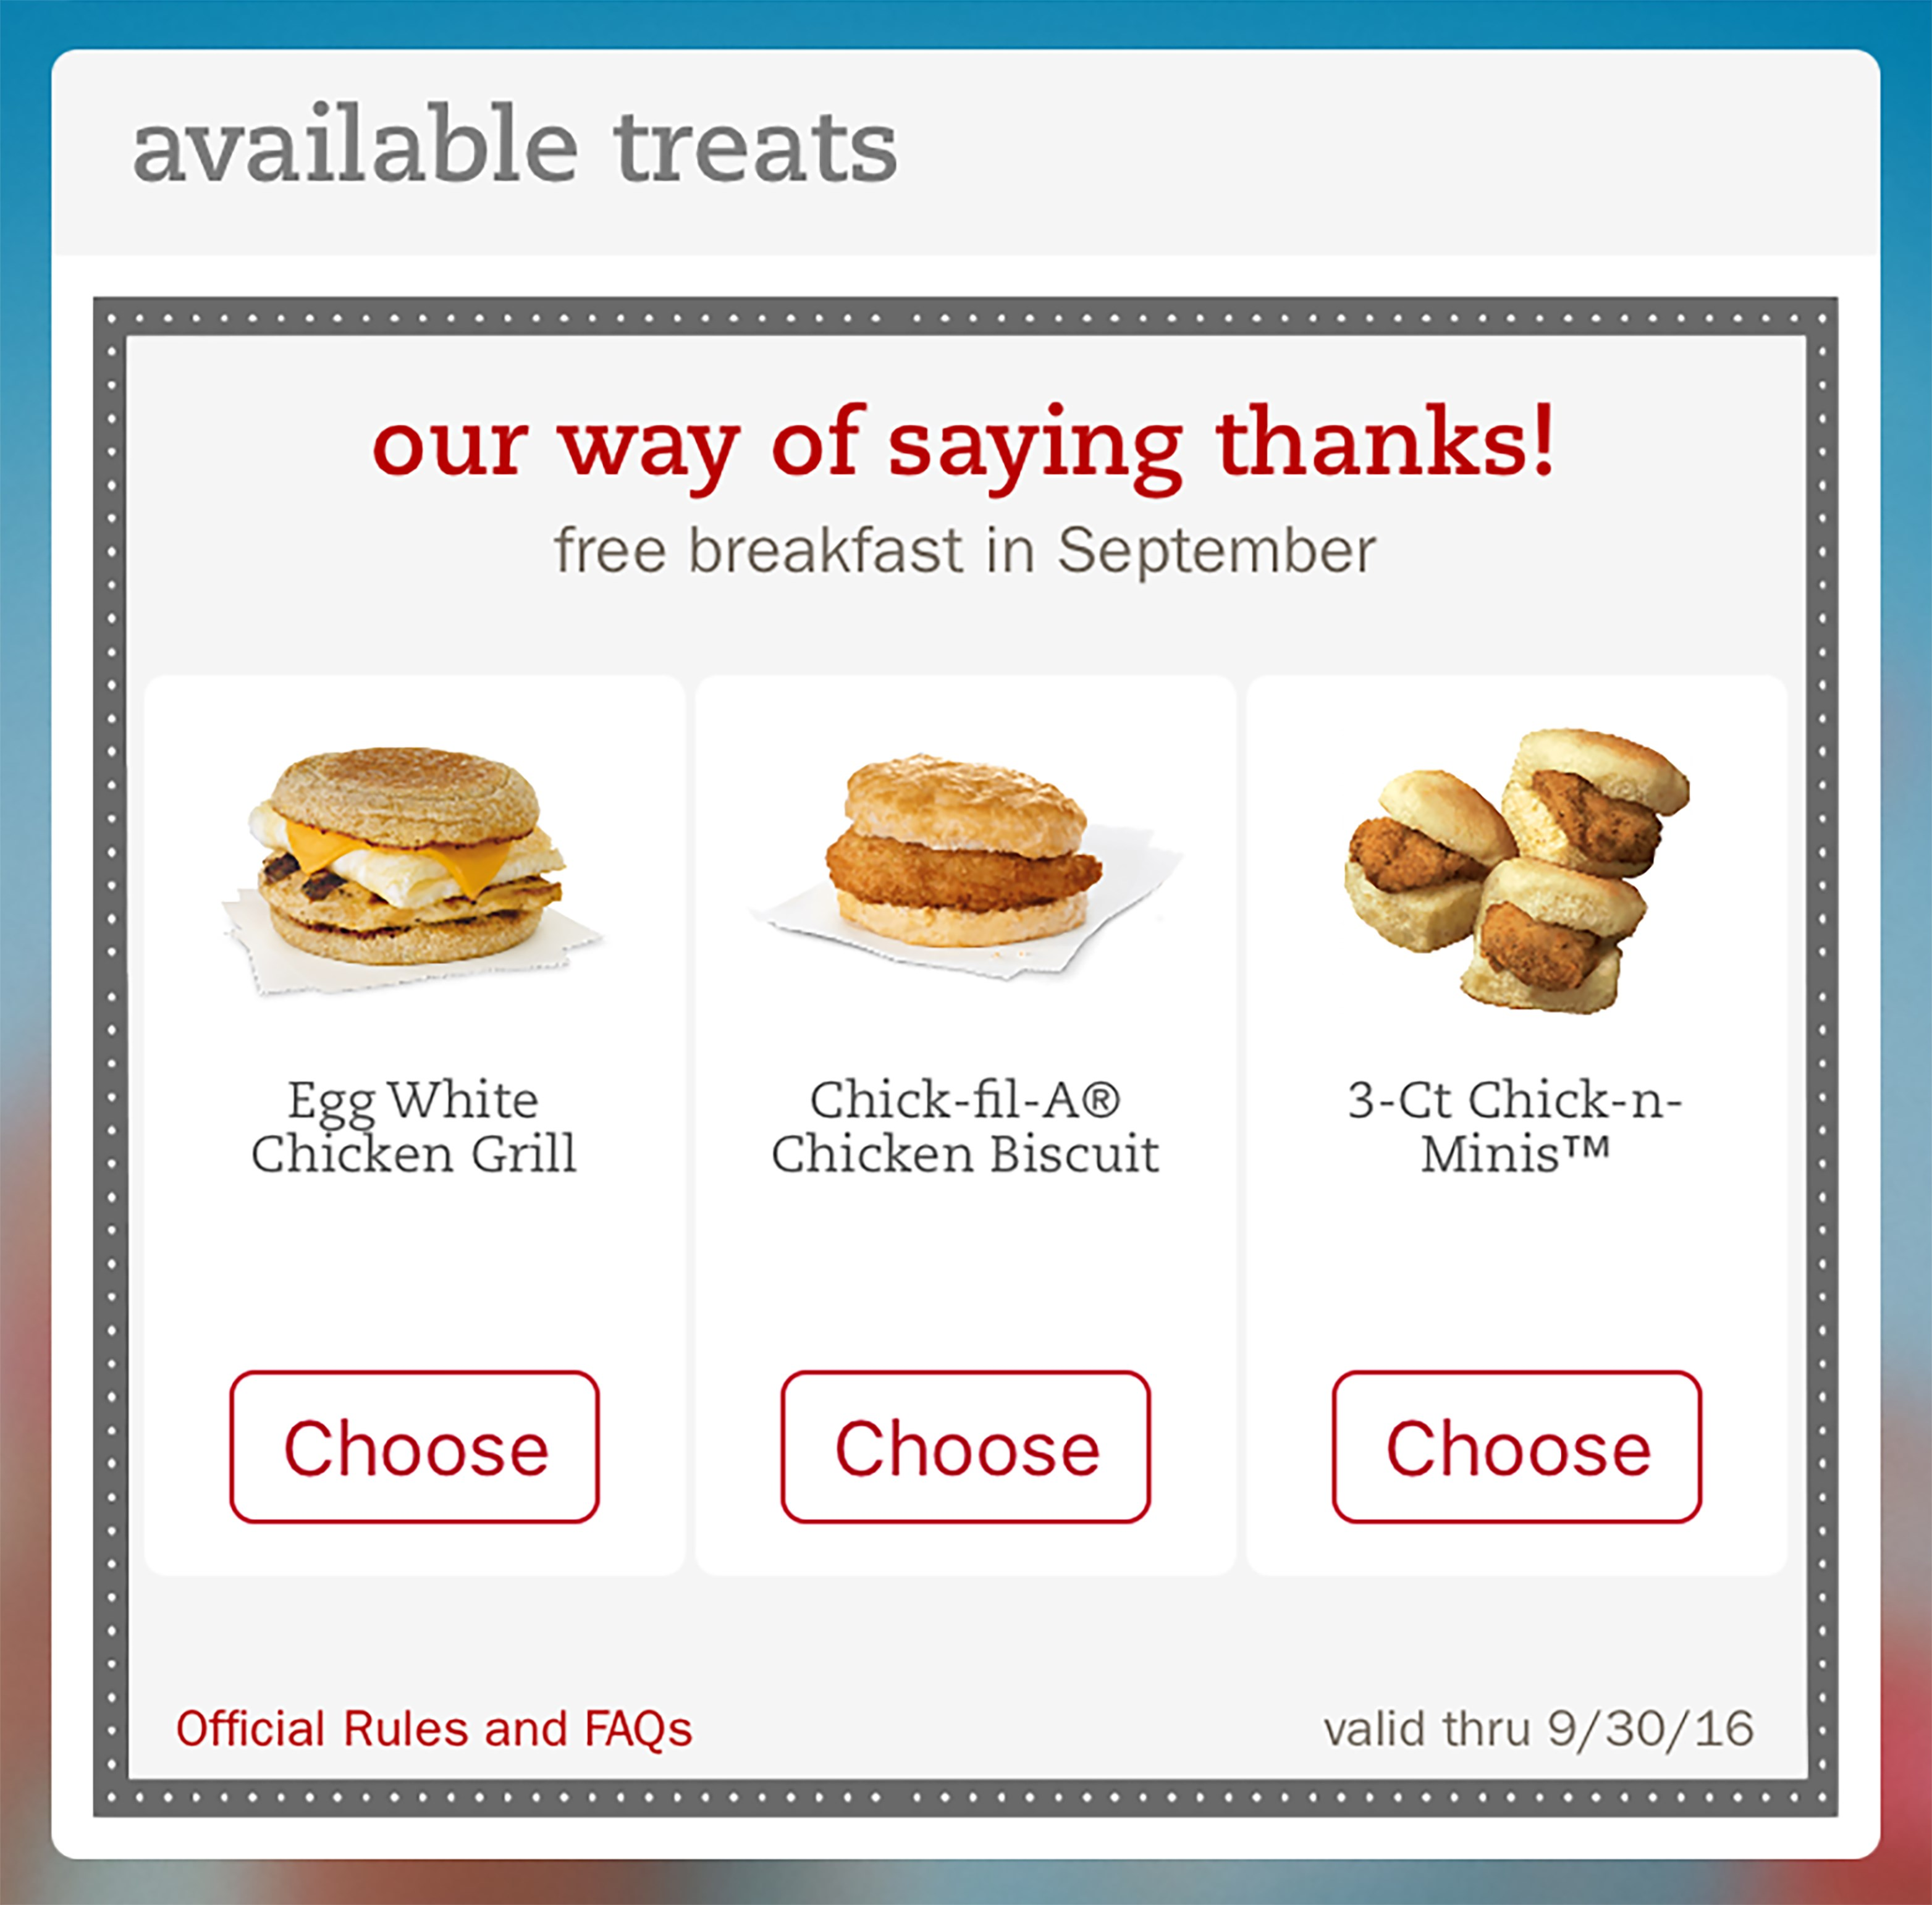 free breakfast for mobile app users | chick-fil-a